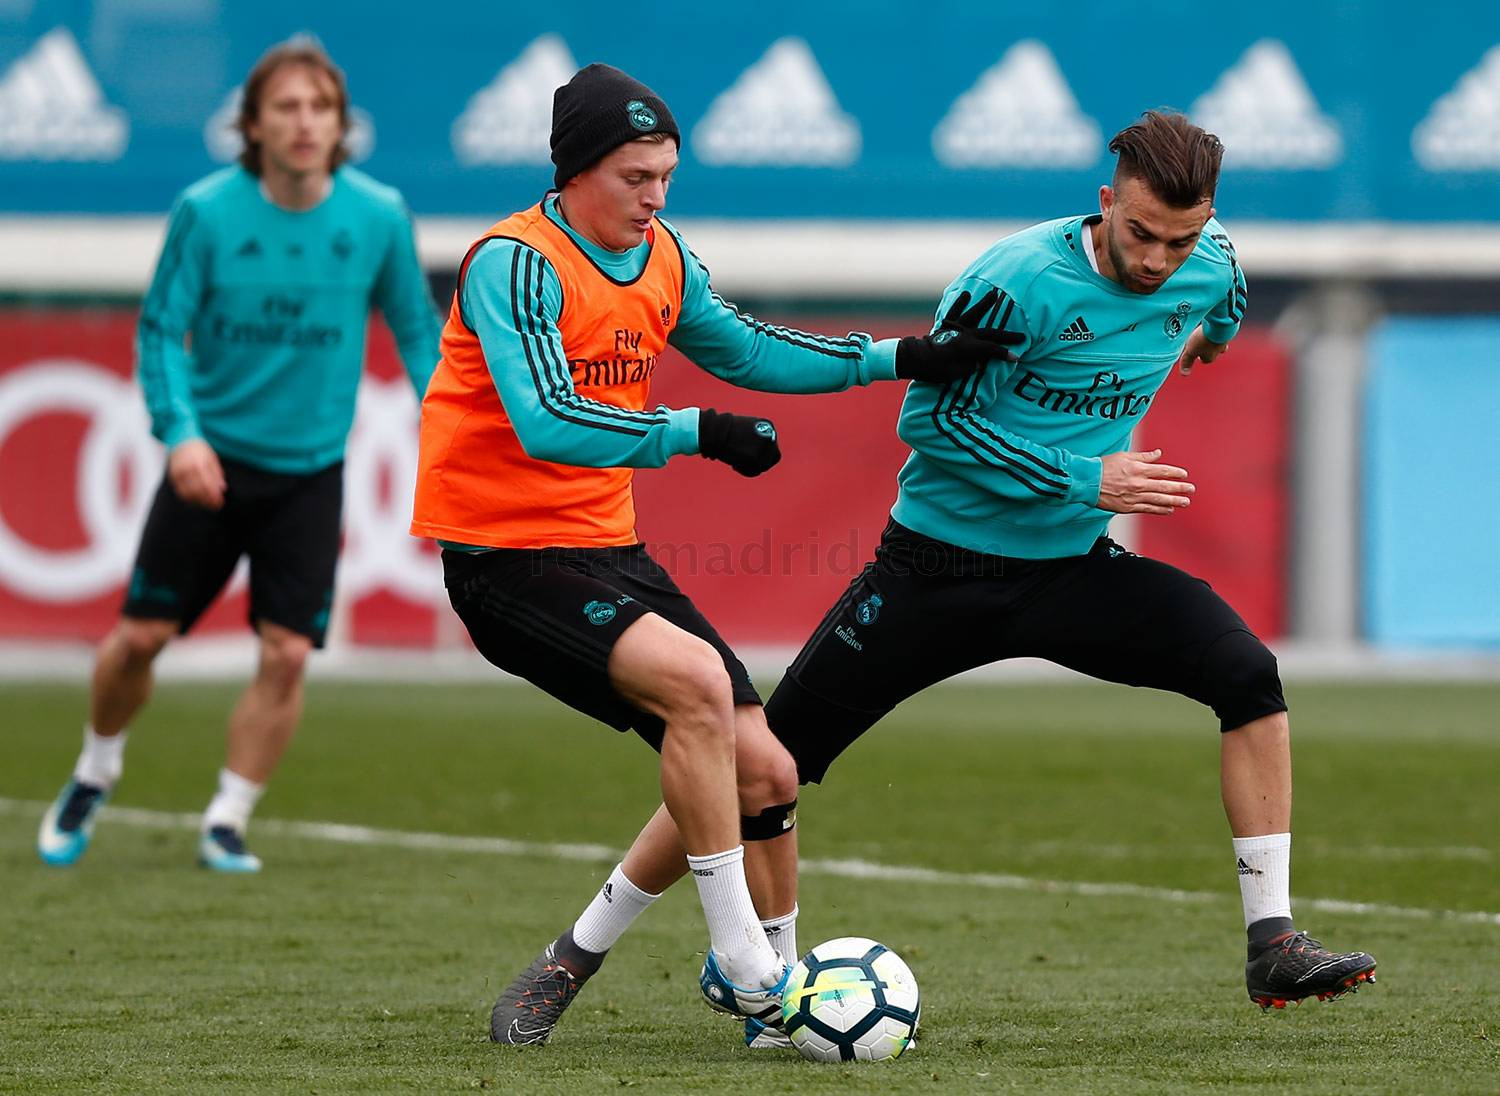 Real Madrid - Entrenamiento del Real Madrid - 08-03-2018